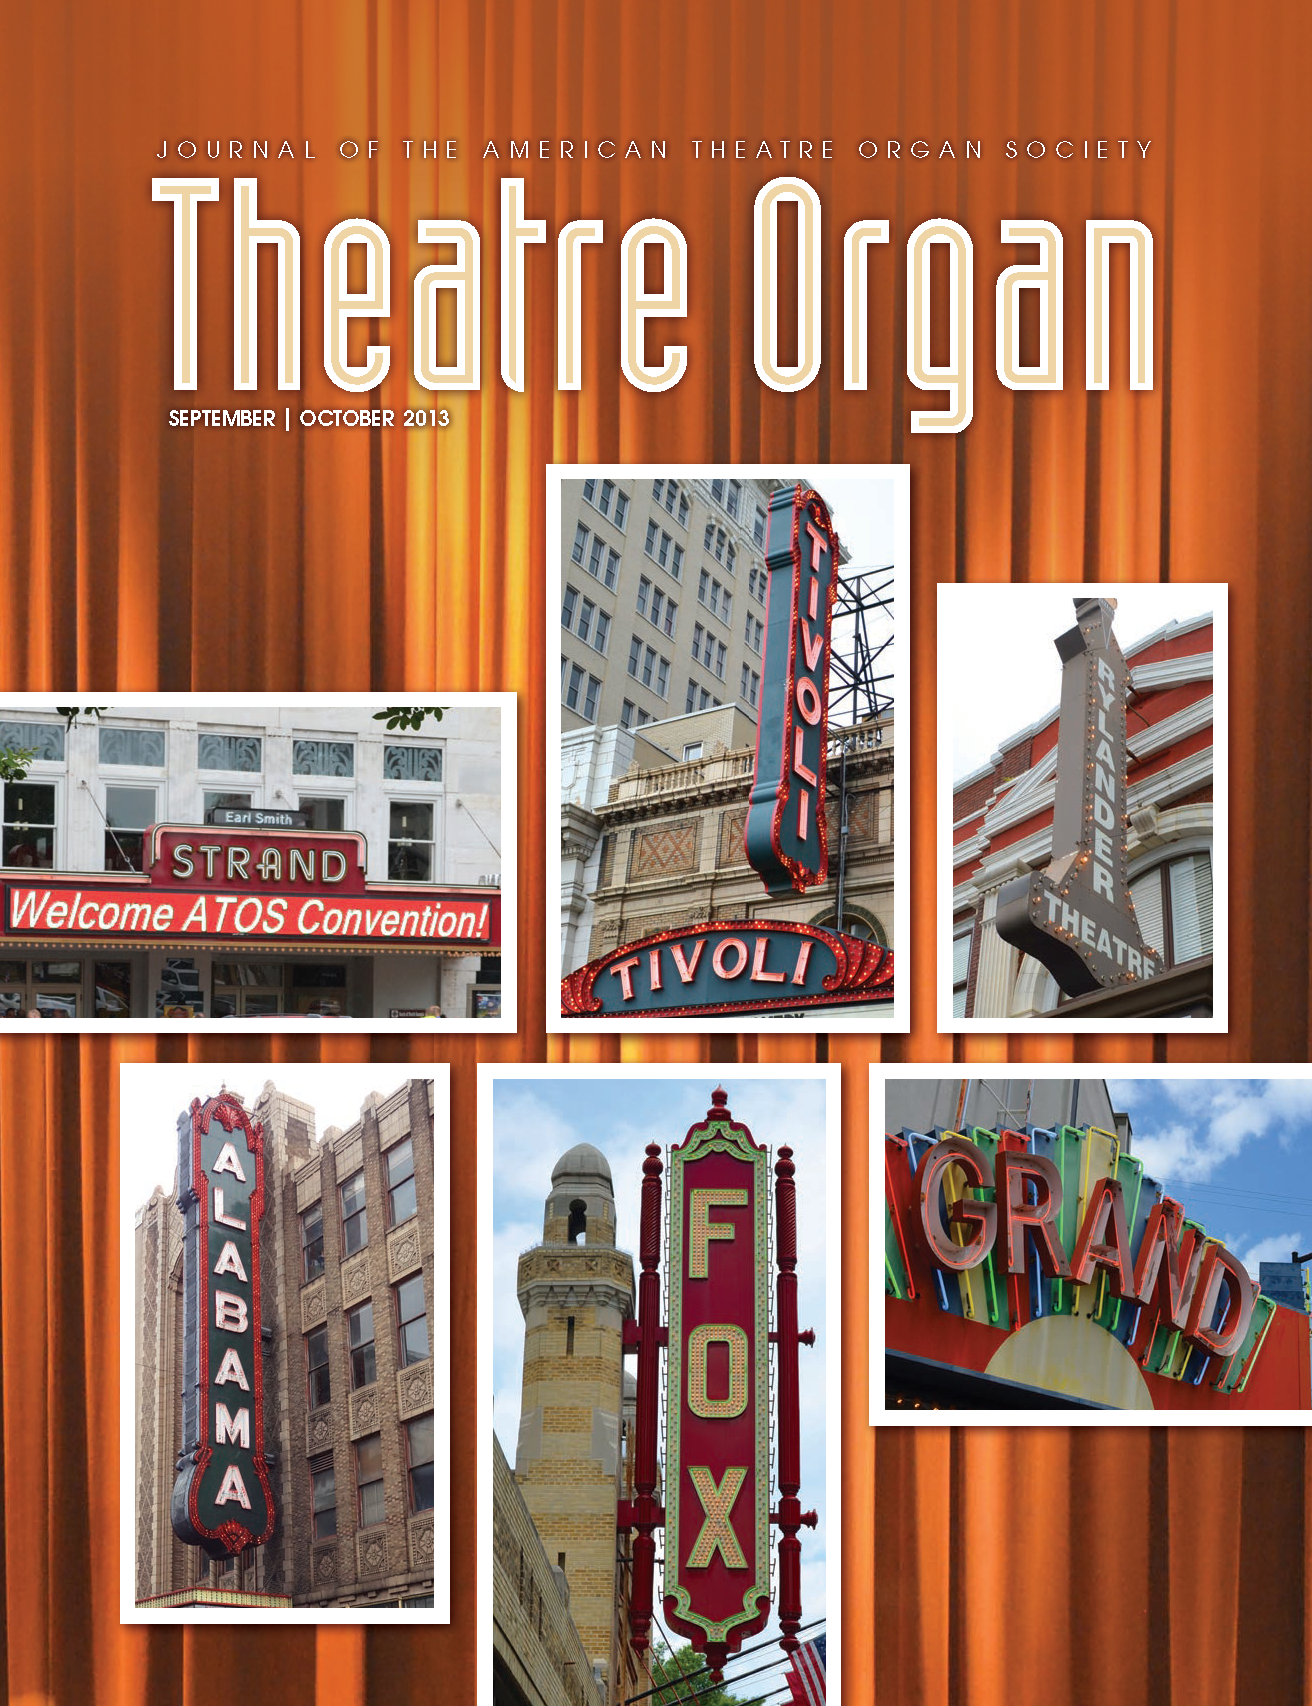 Theatre Organ, September - October 2013, Volume 55, Number 5